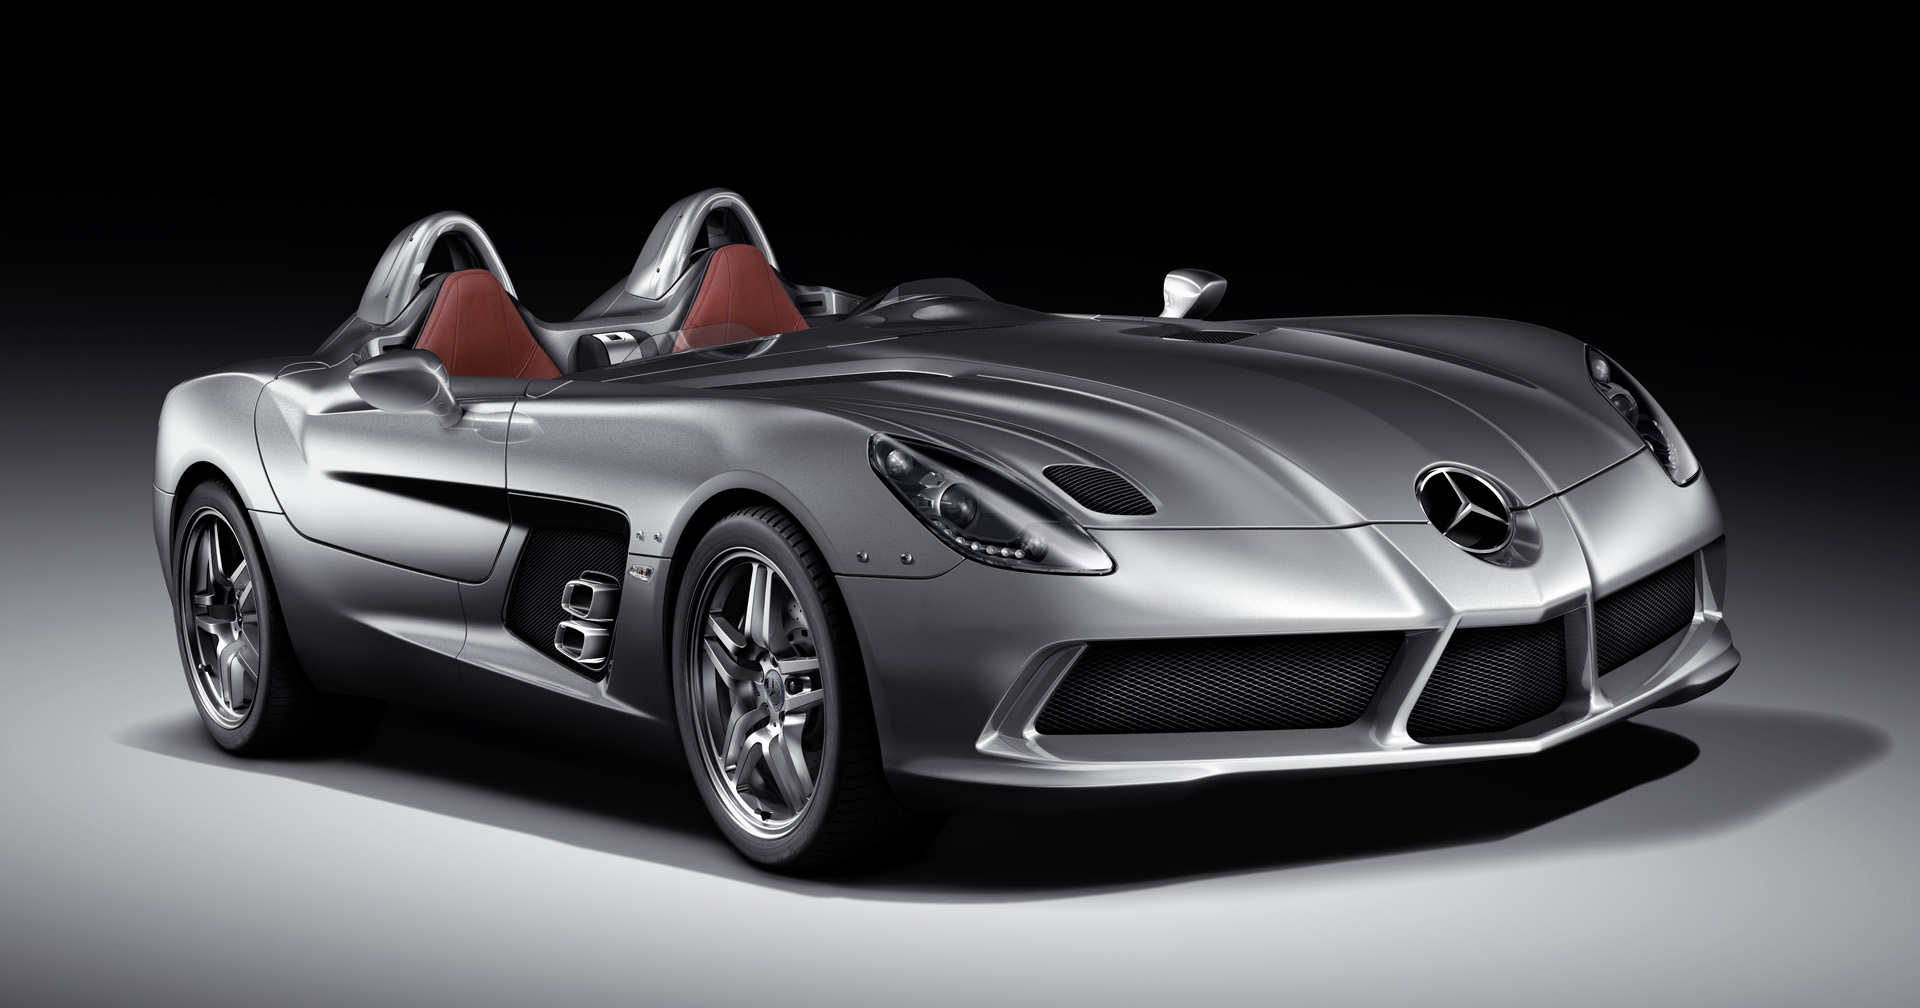 Download This High Resolution Picture of the 2010 Mercedes-Benz SLR Stirling